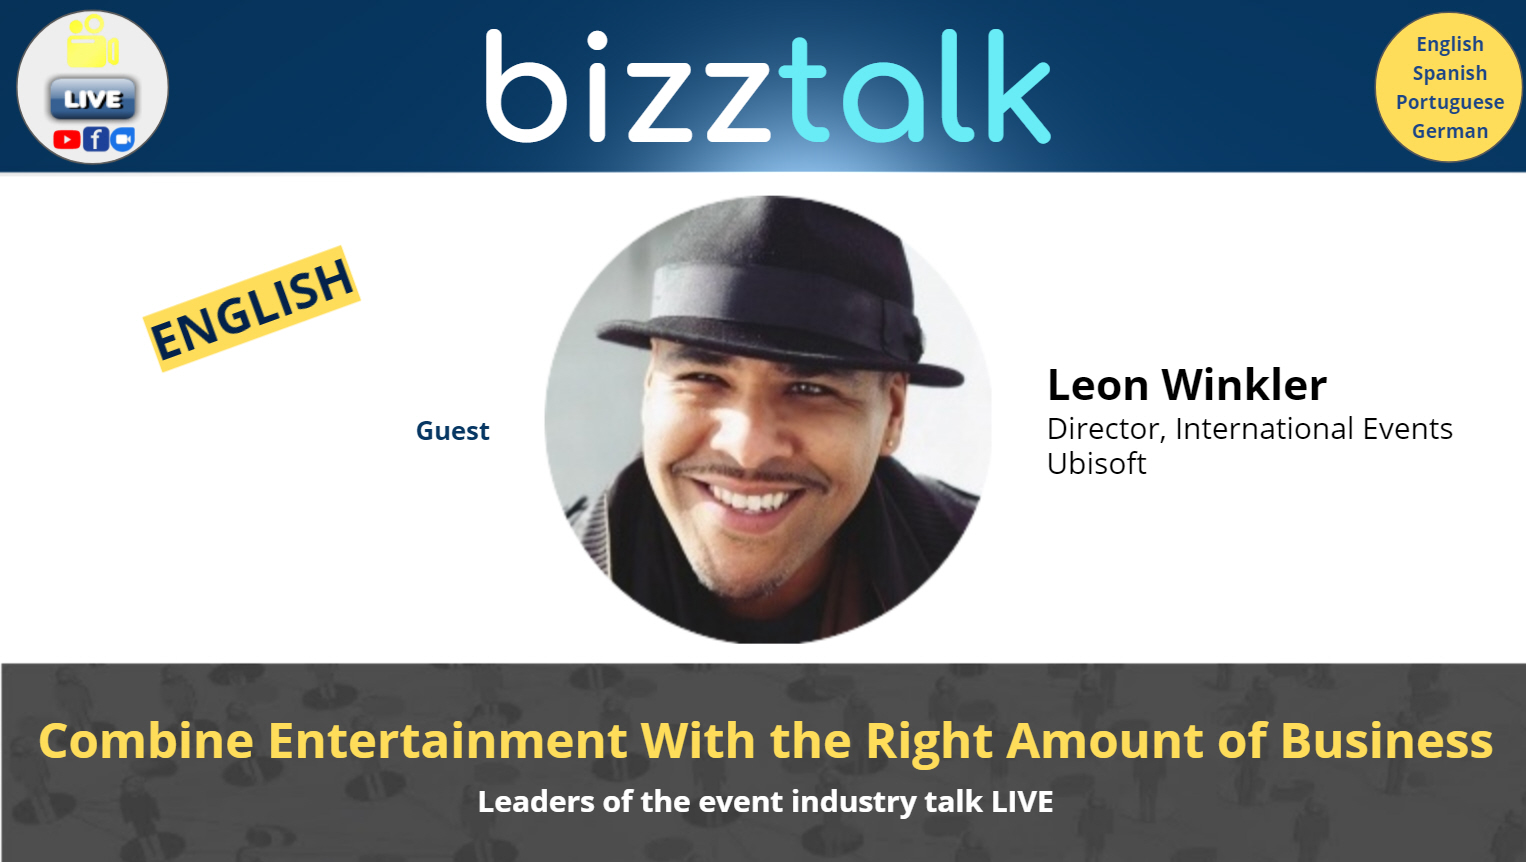 Combine Entertainment With the Right Amount of Business